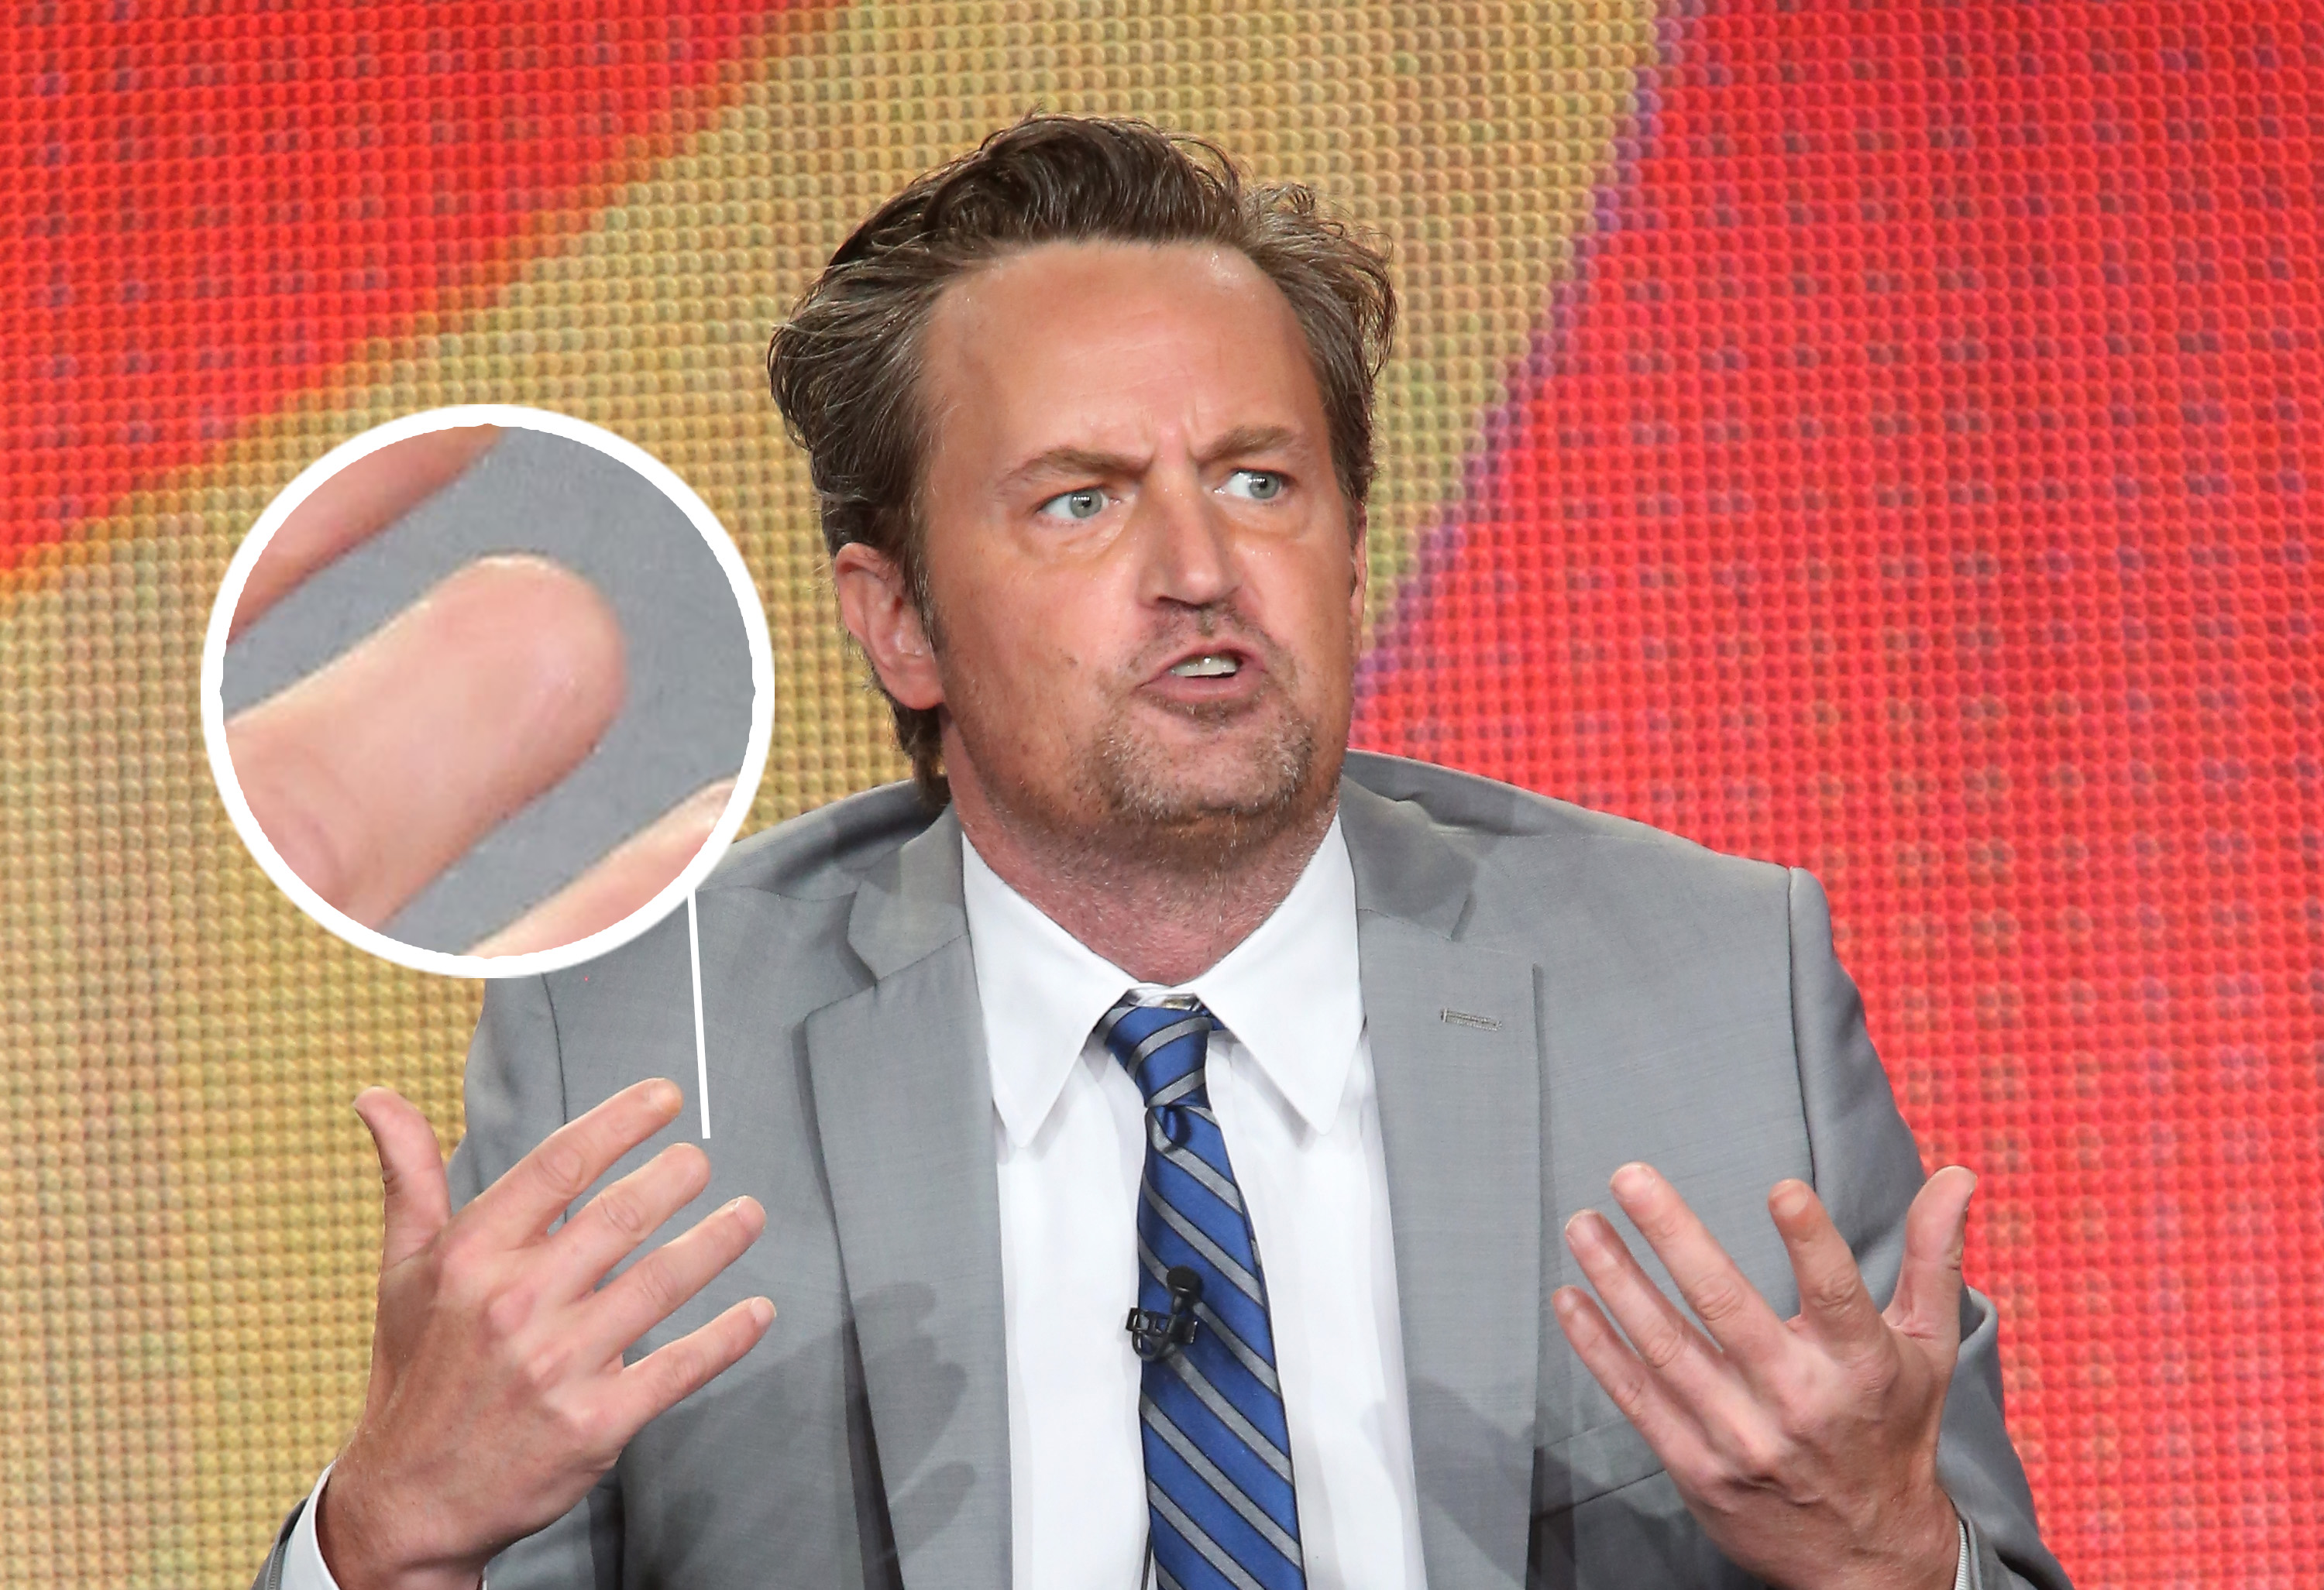 e3107ba1e Matthew Perry, Vince Vaughn, and More Stars Who Are Missing a Finger ...